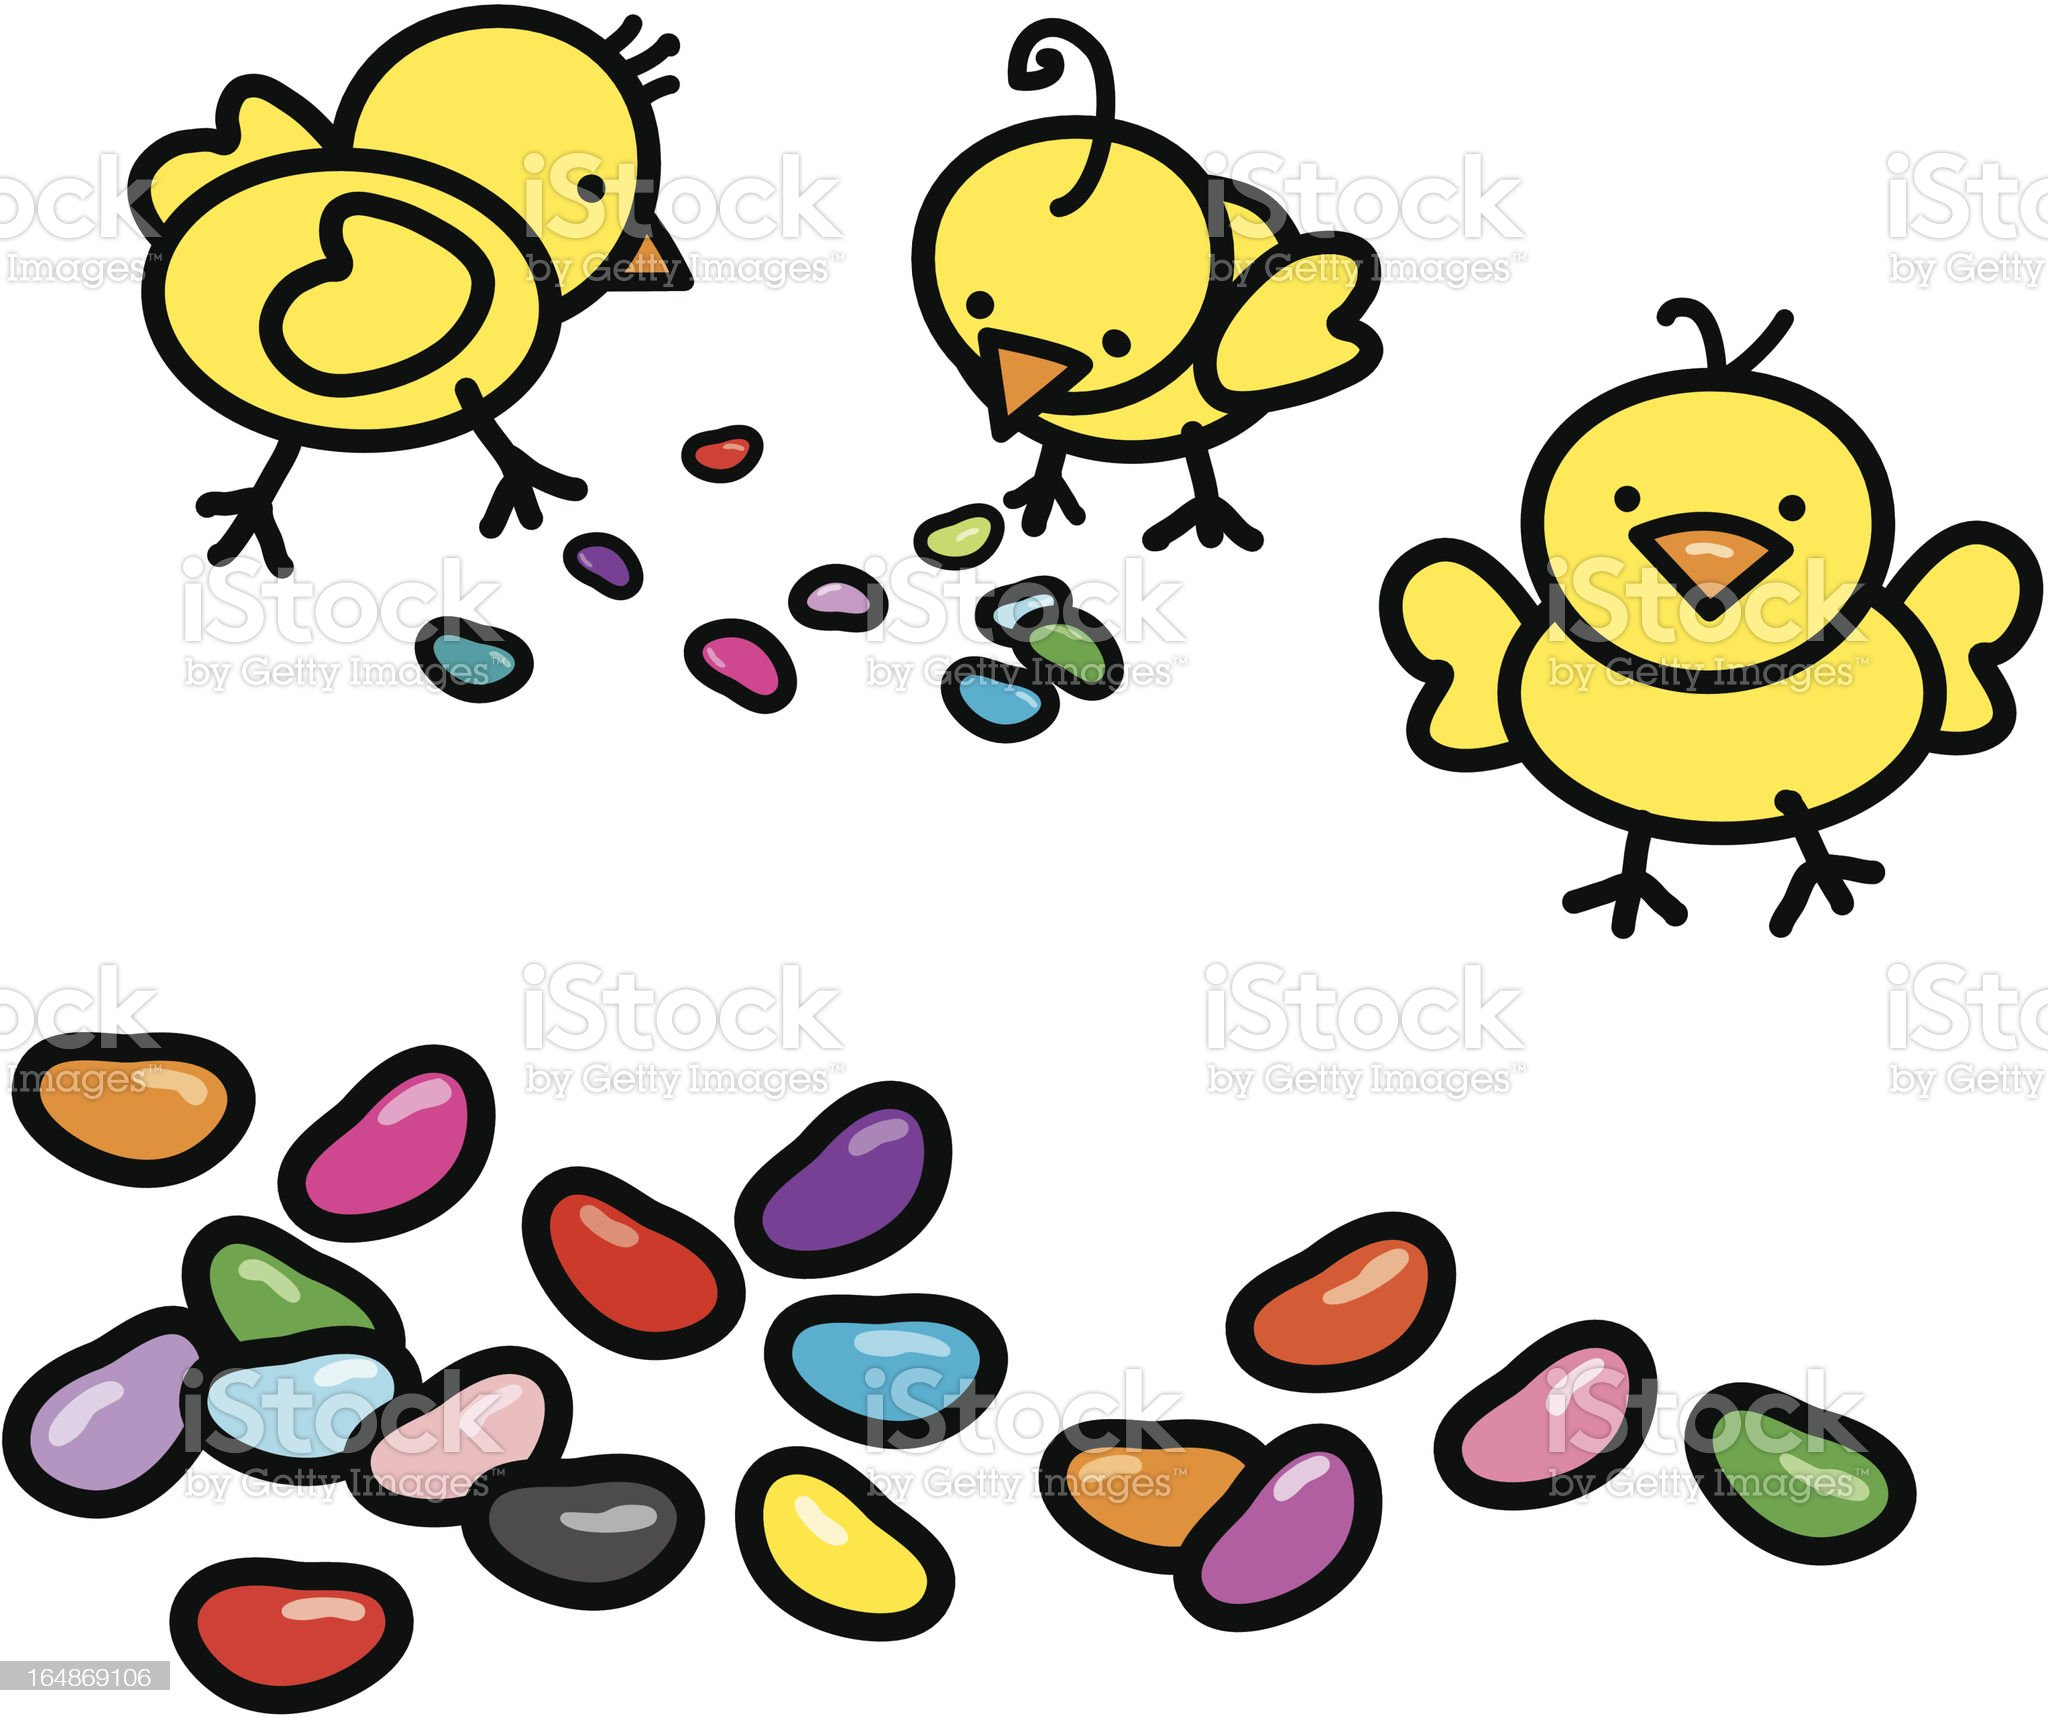 Easter Holiday Images royalty-free stock vector art